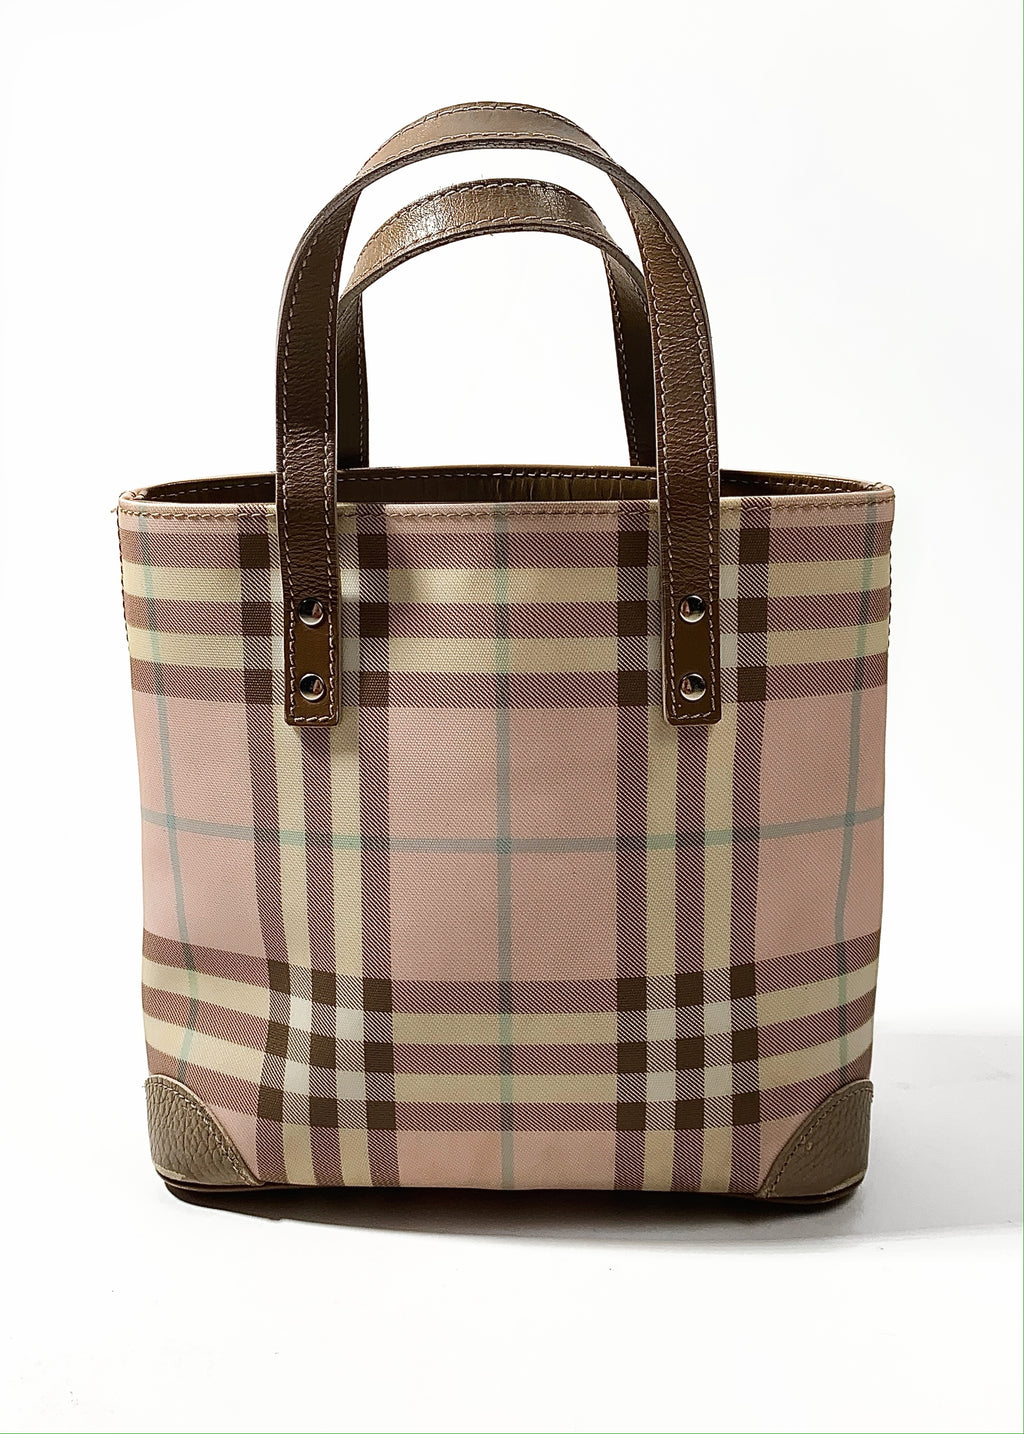 Burberry London Leather-Trimmed Nova Checked Tote